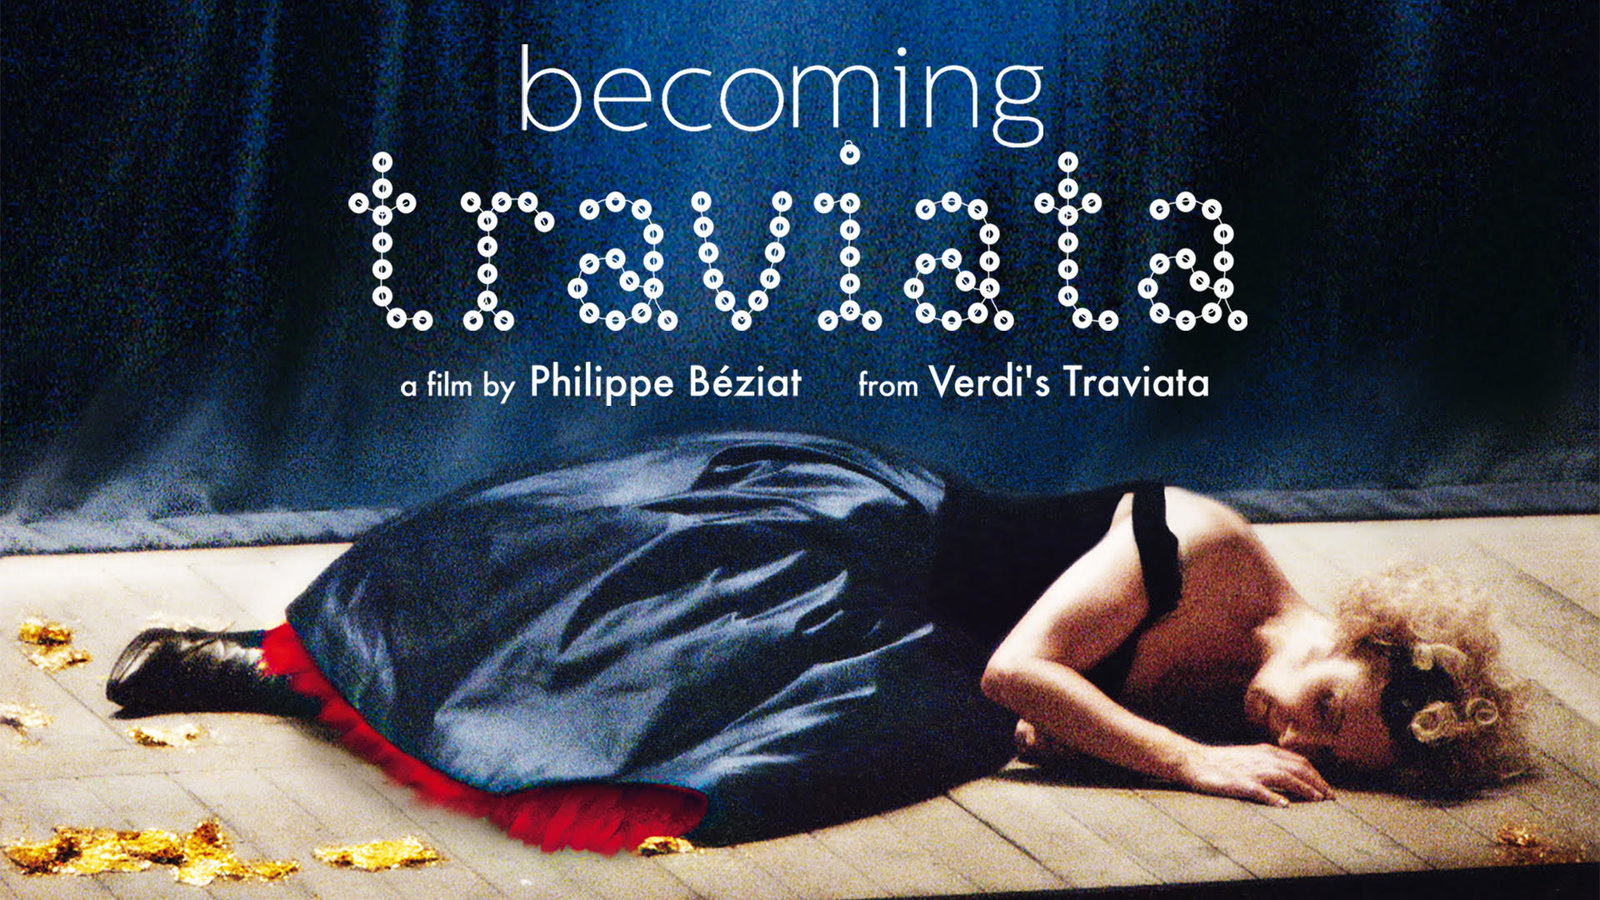 Becoming Traviata - Behind the Scenes of a Celebrated Opera